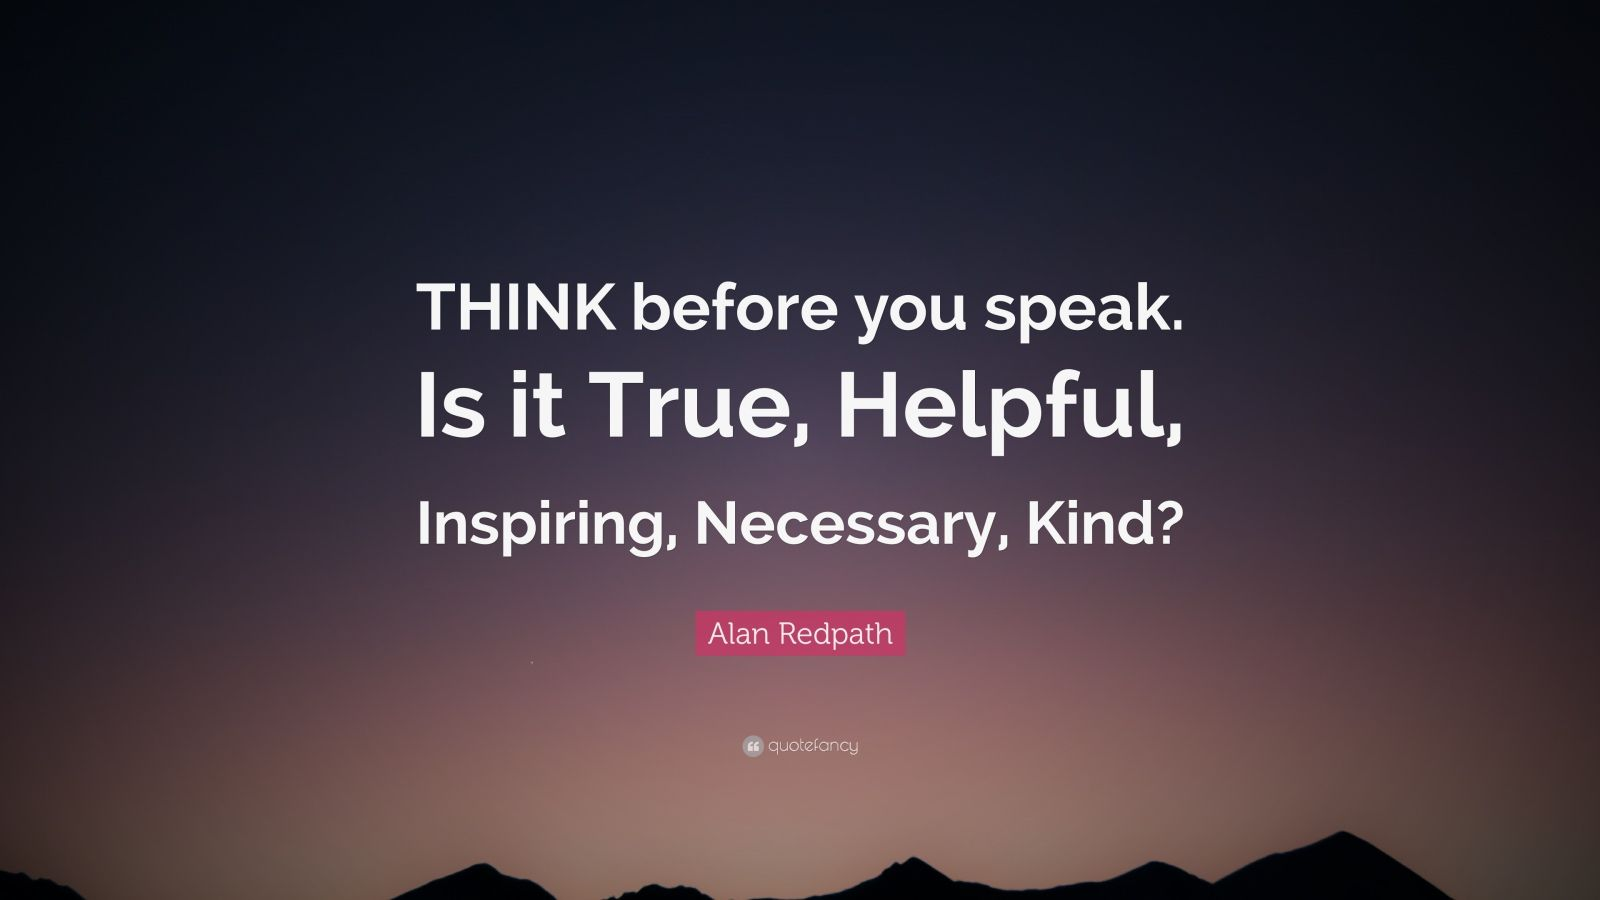 """Alan Redpath Quote: """"THINK before you speak. Is it True, Helpful, Inspiring, Necessary, Kind?"""""""